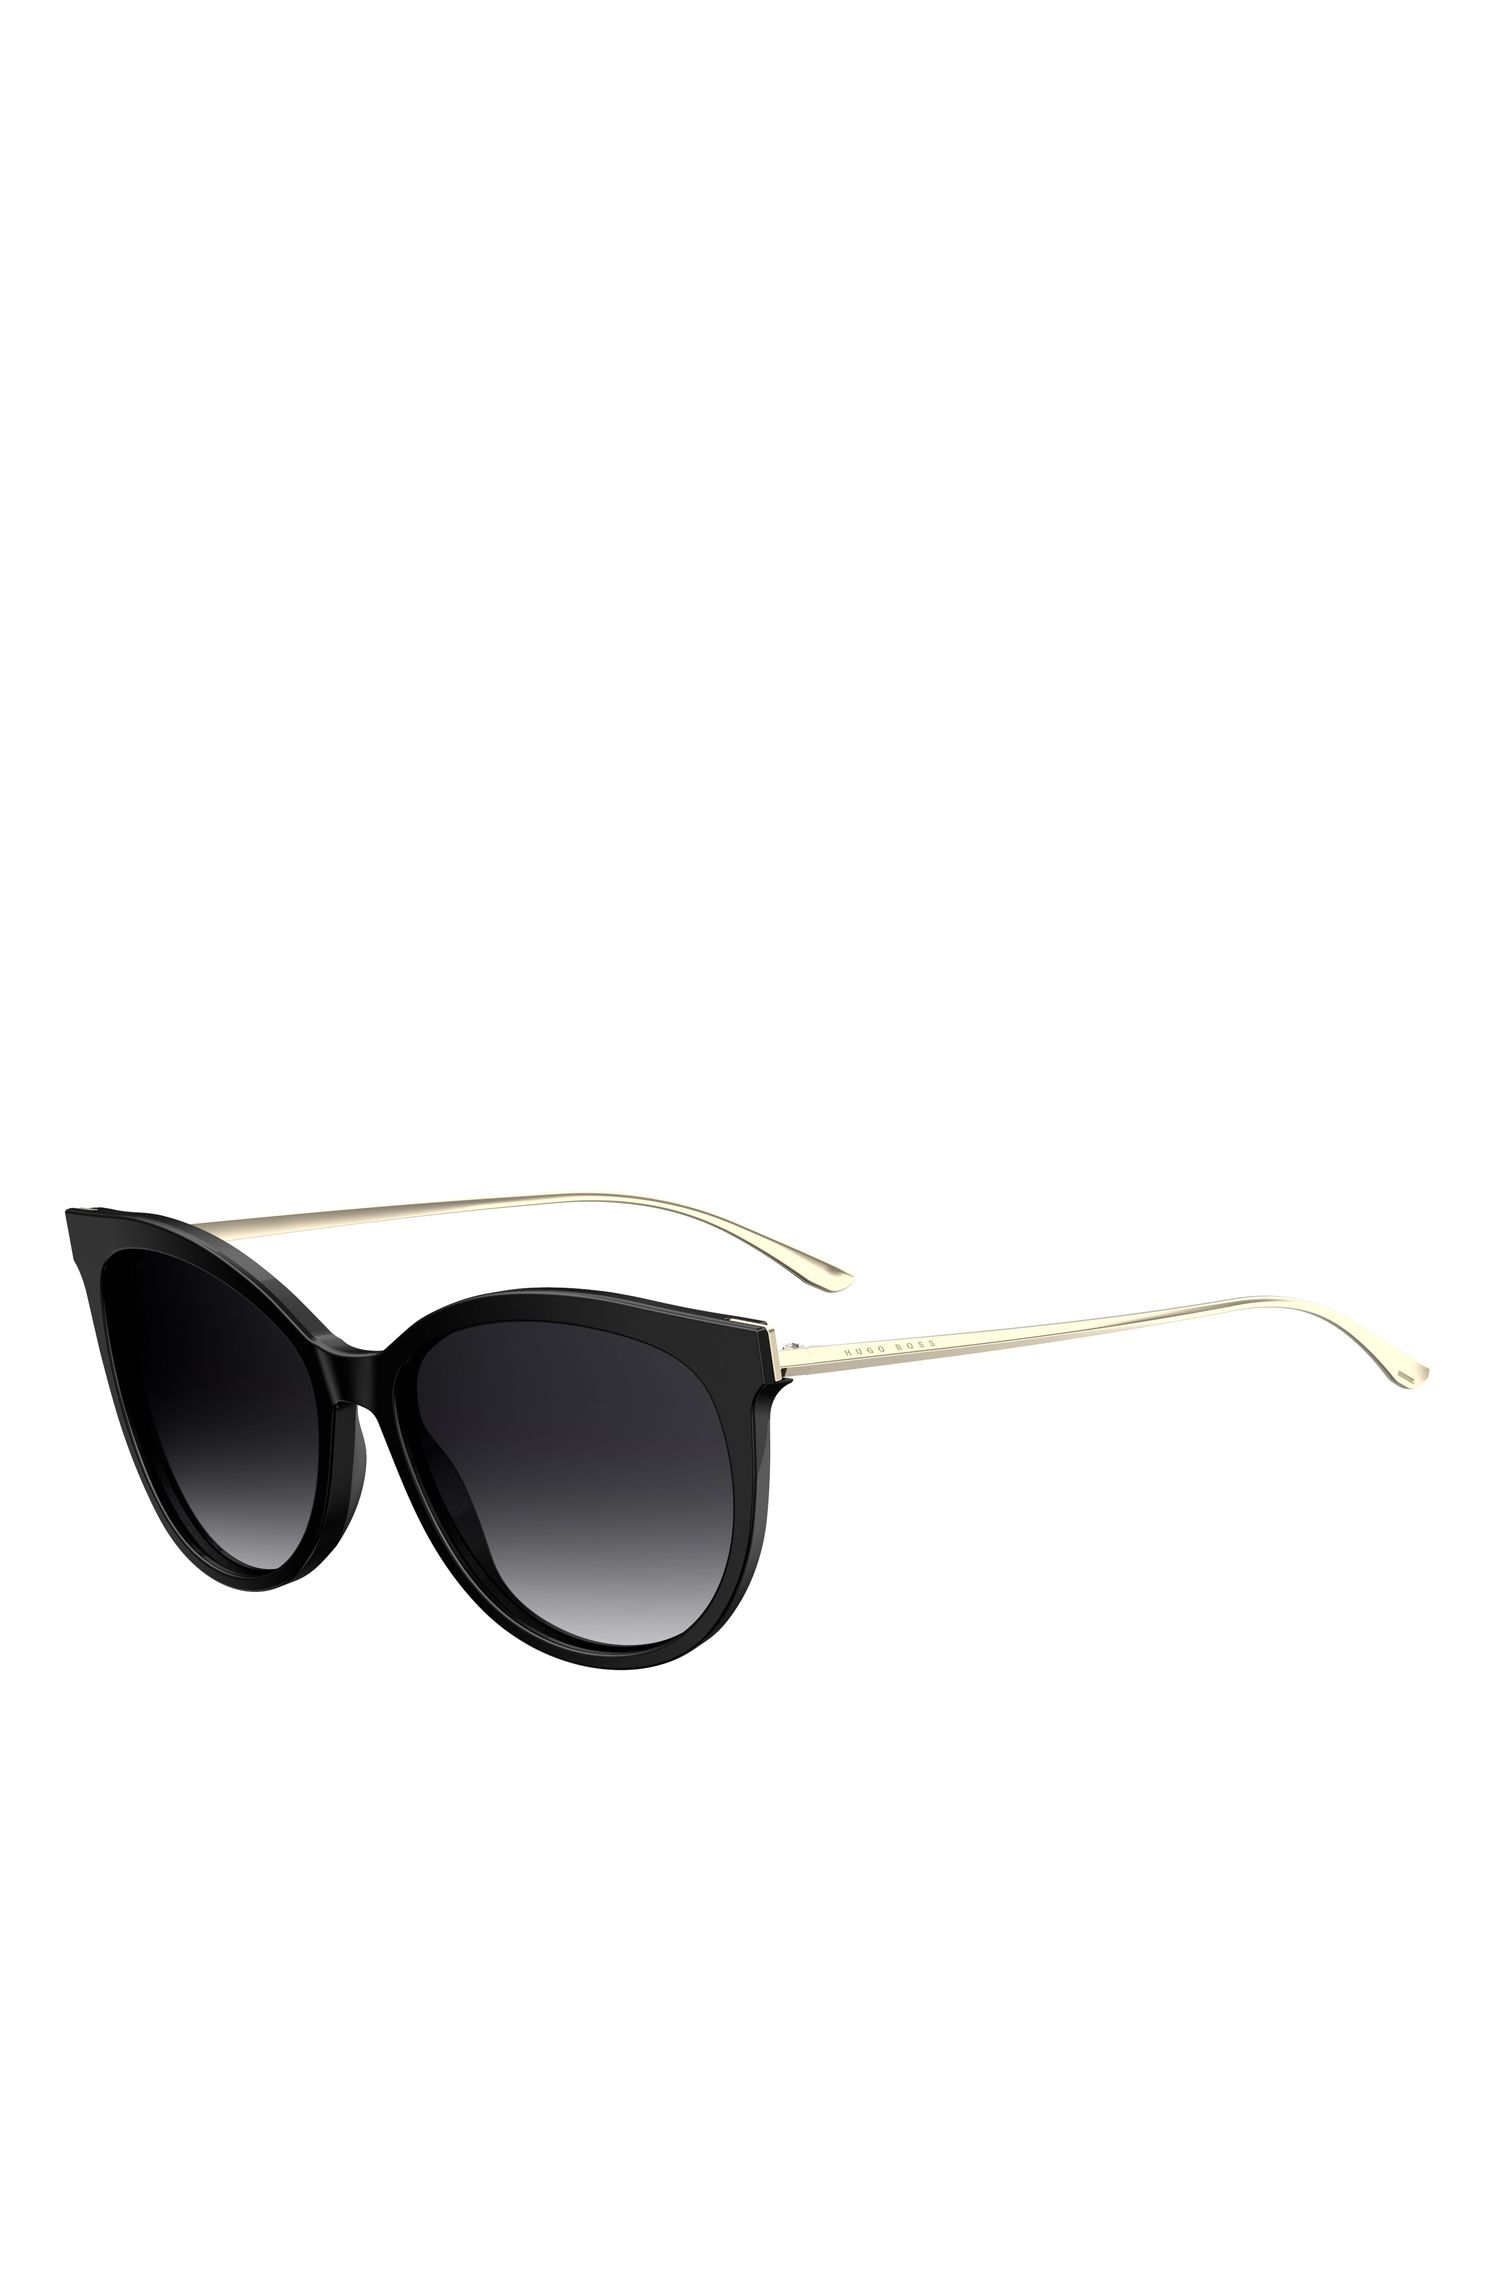 'BOSS 0892S' | Black Cat-eye Sunglasses